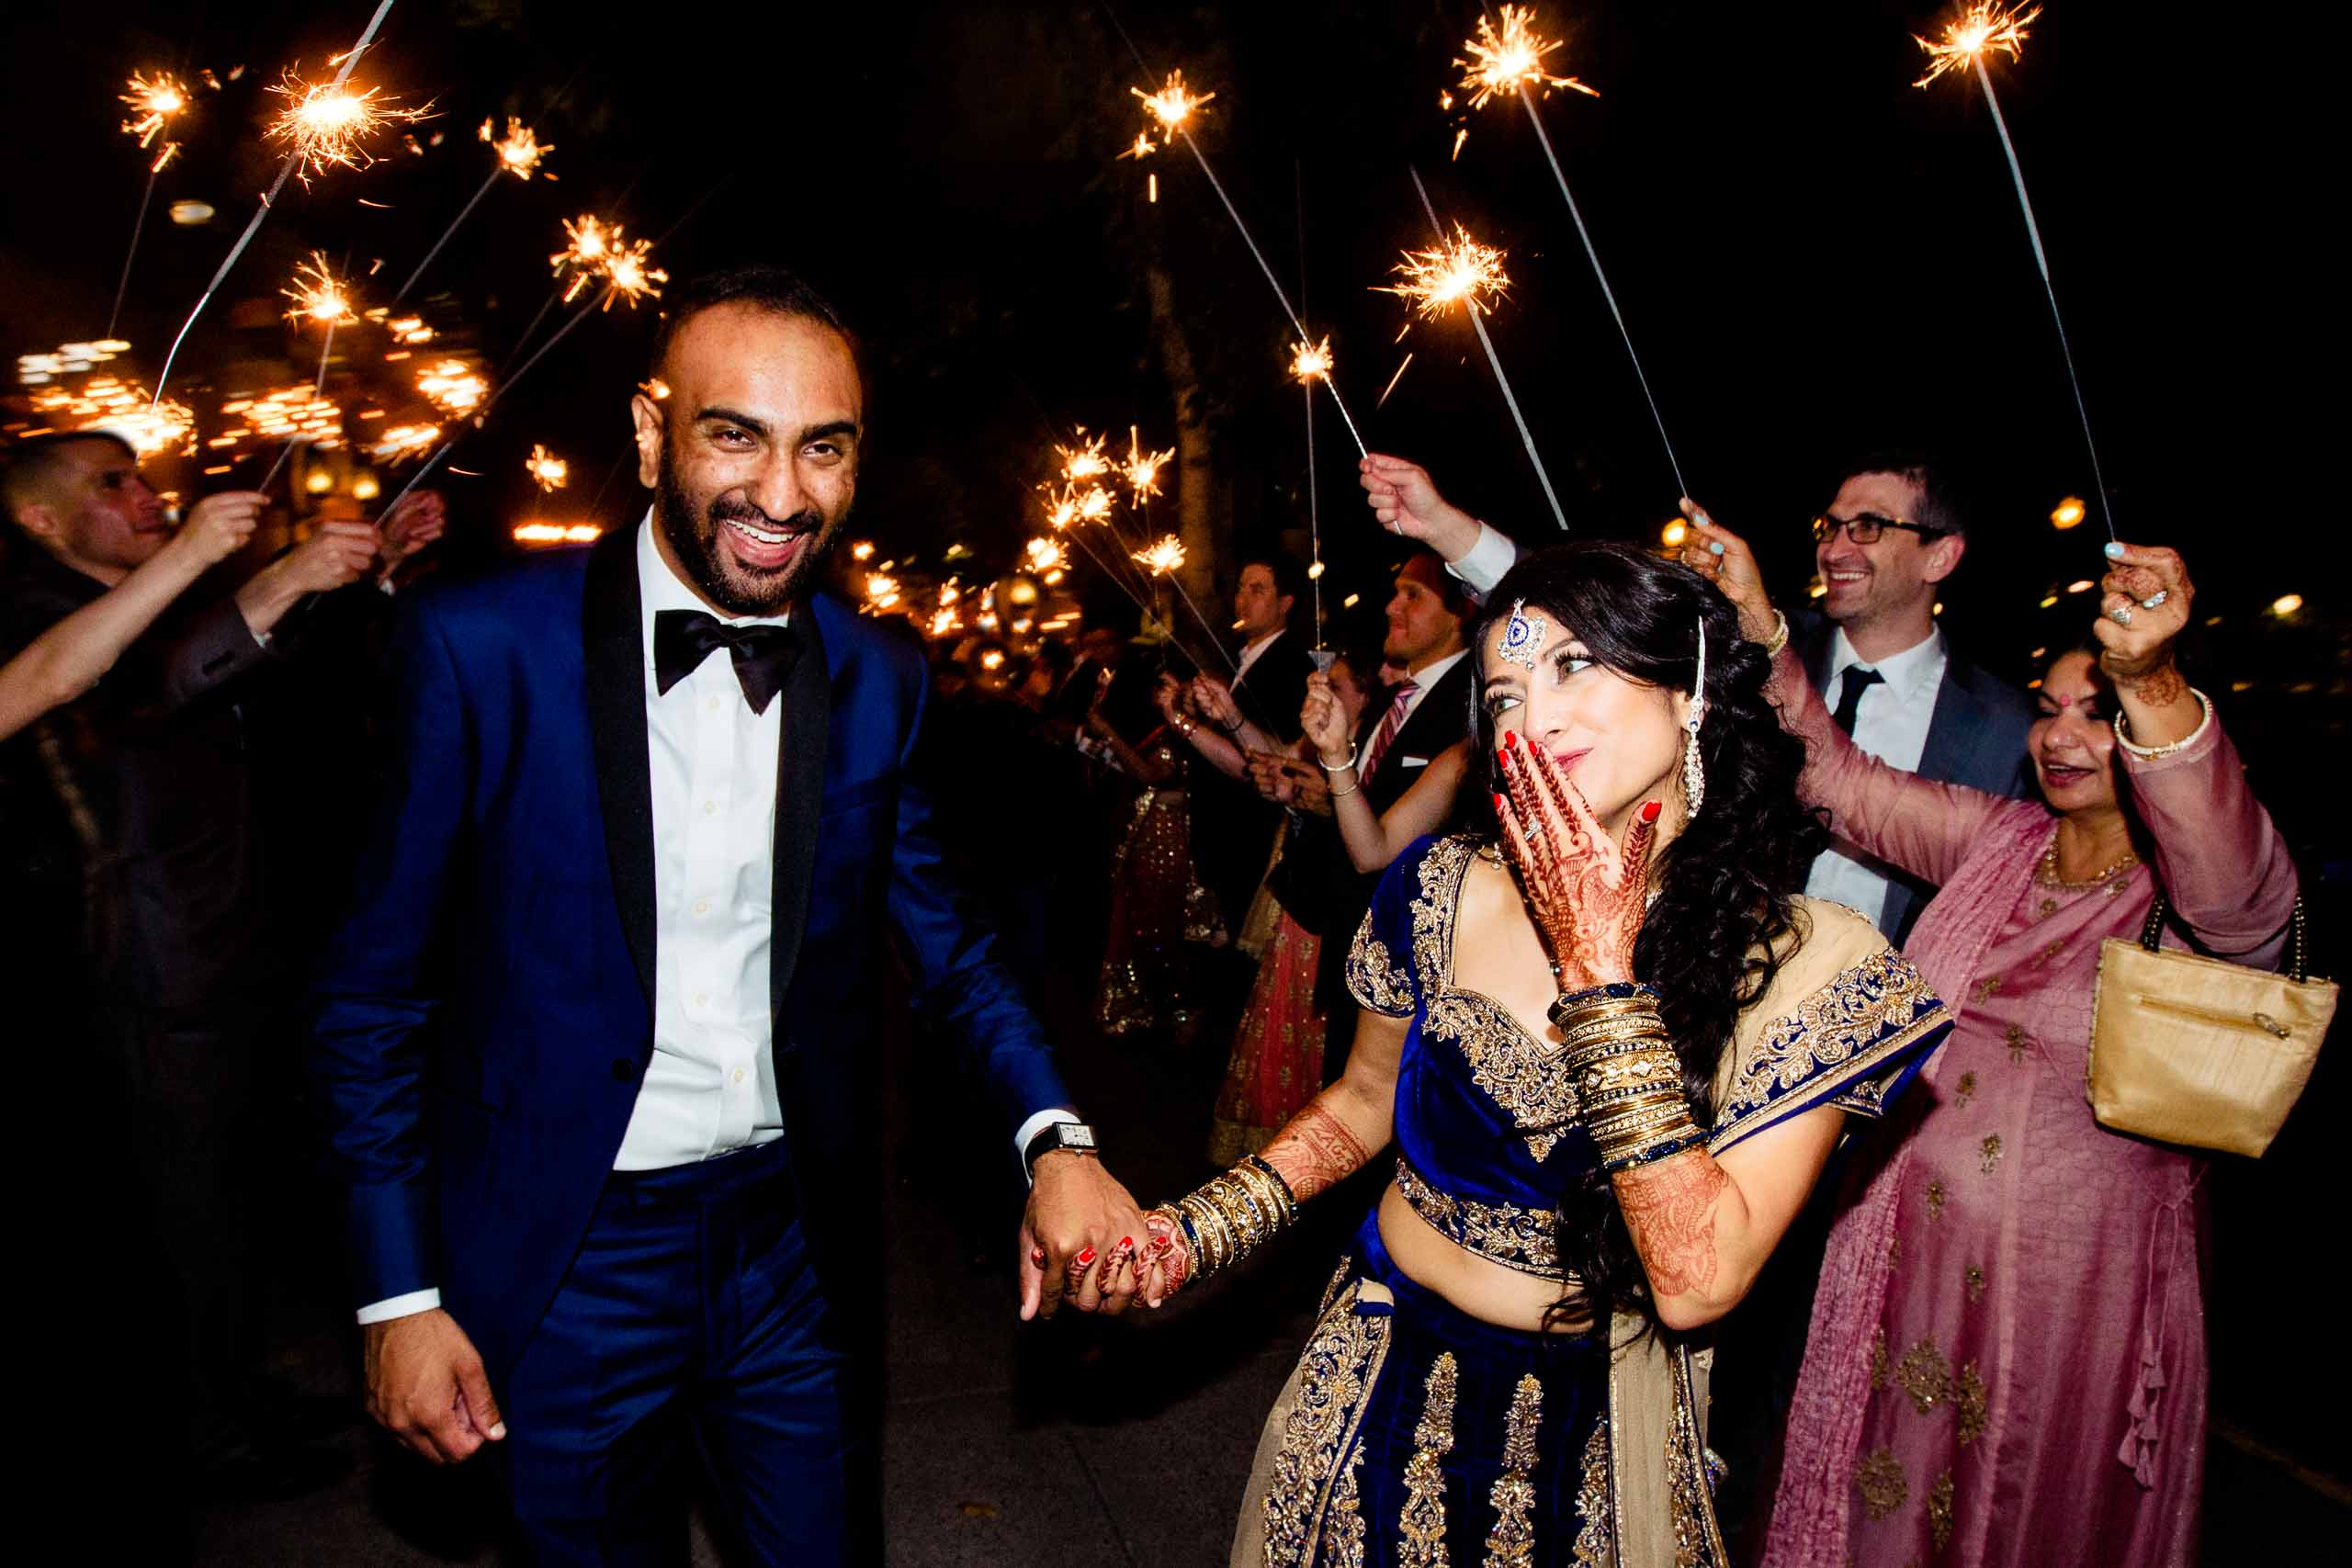 Ecstatic dancing photo of an Indian bride and groom exiting their Portland Art museum wedding.